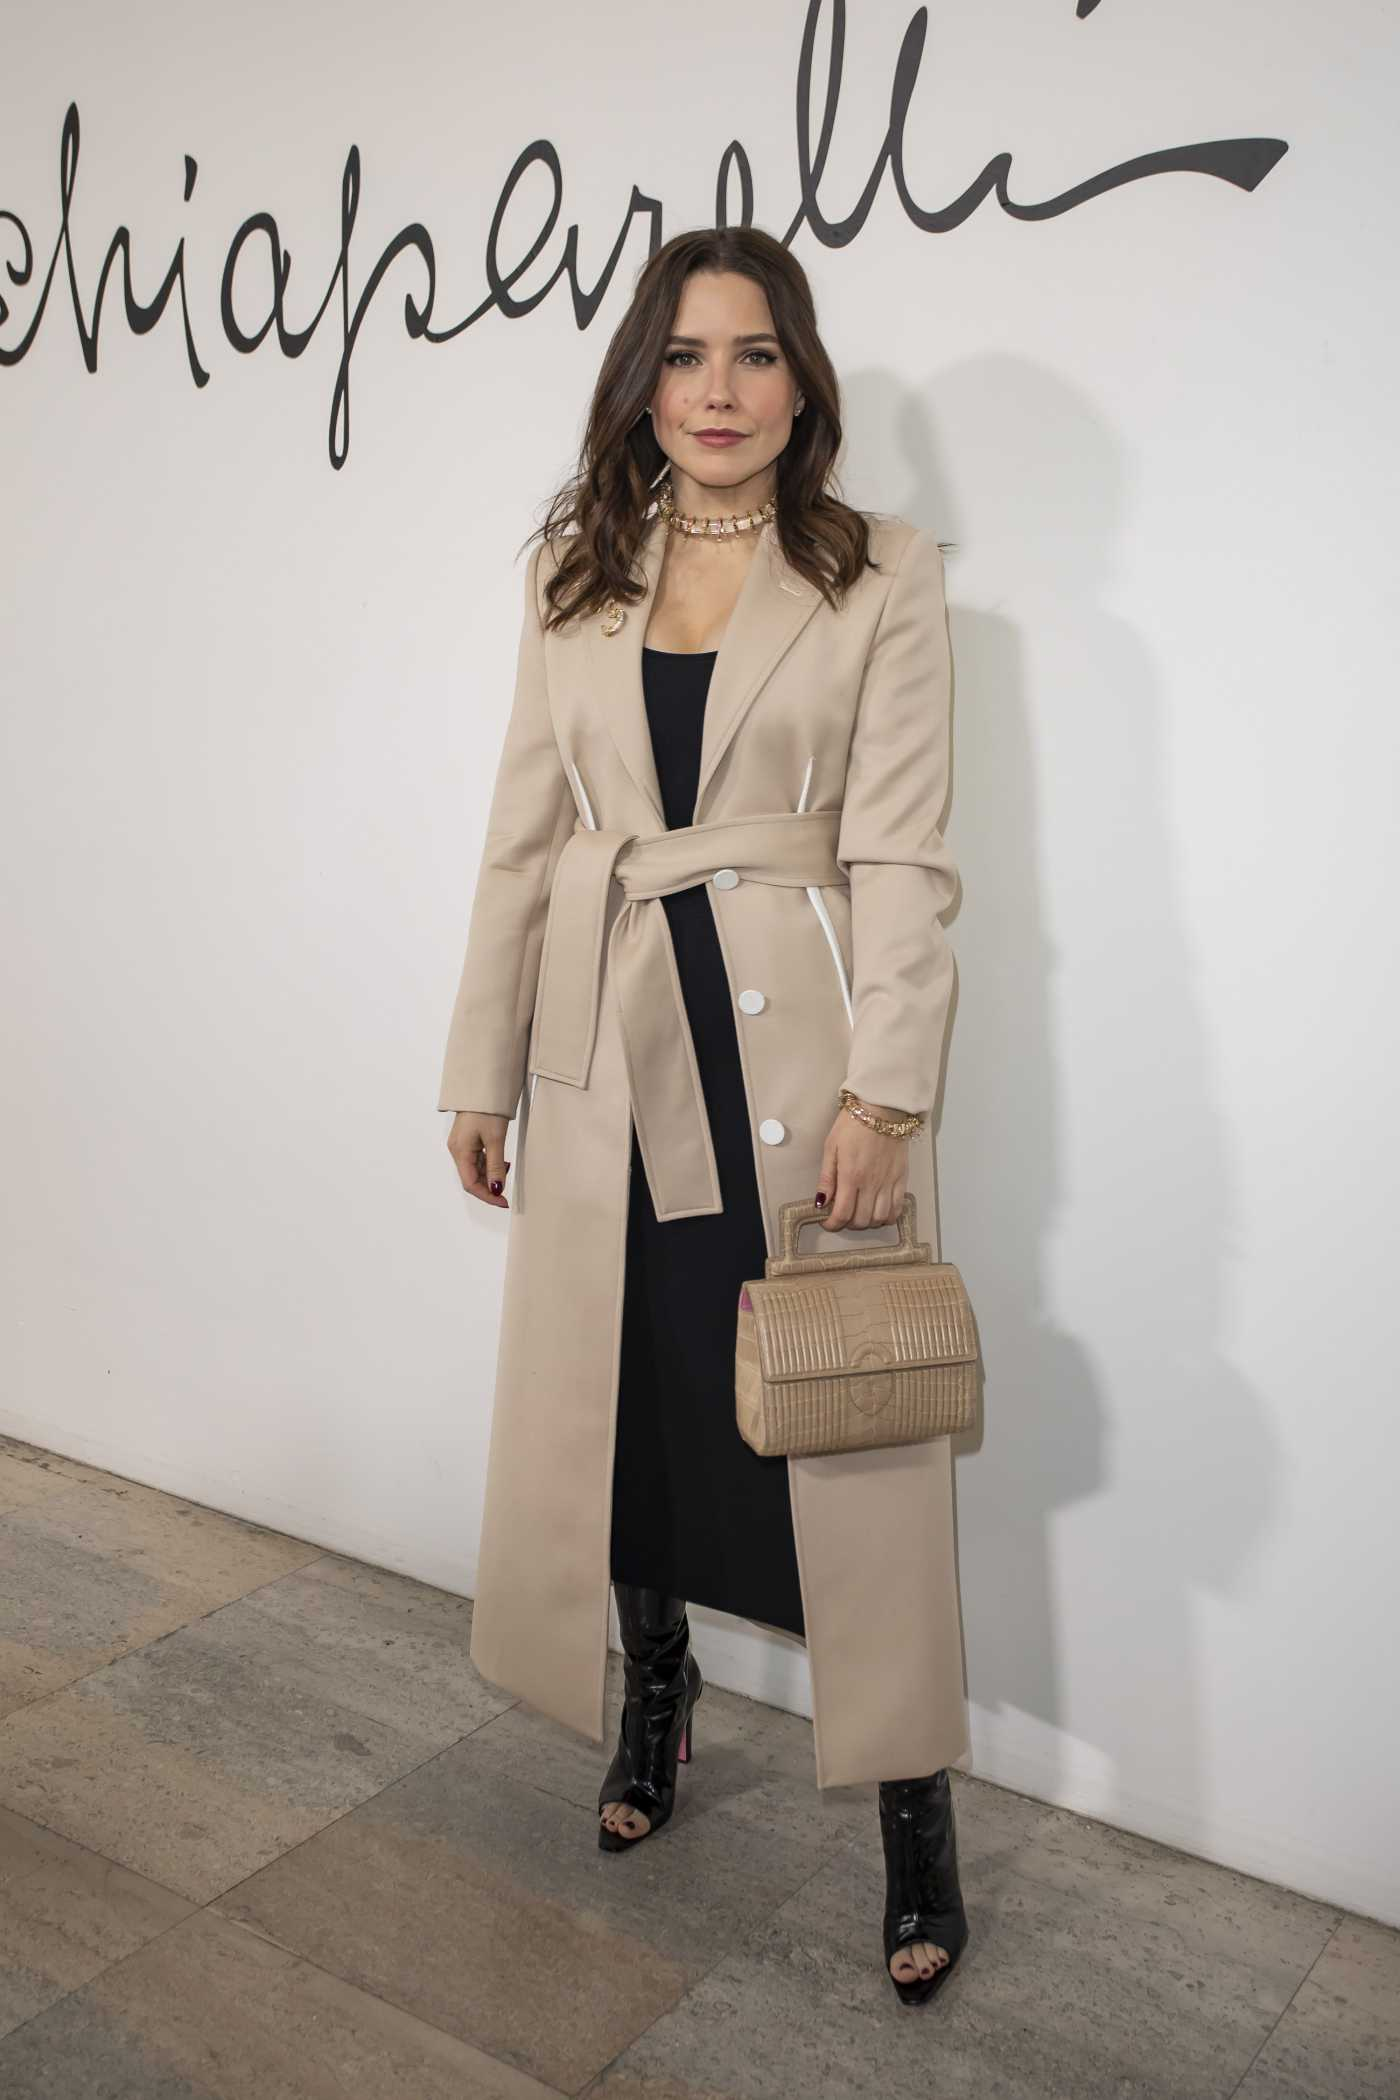 Sophia Bush Attends 2020 Schiaparelli Haute Couture Fashion Show in Paris 01/20/2020